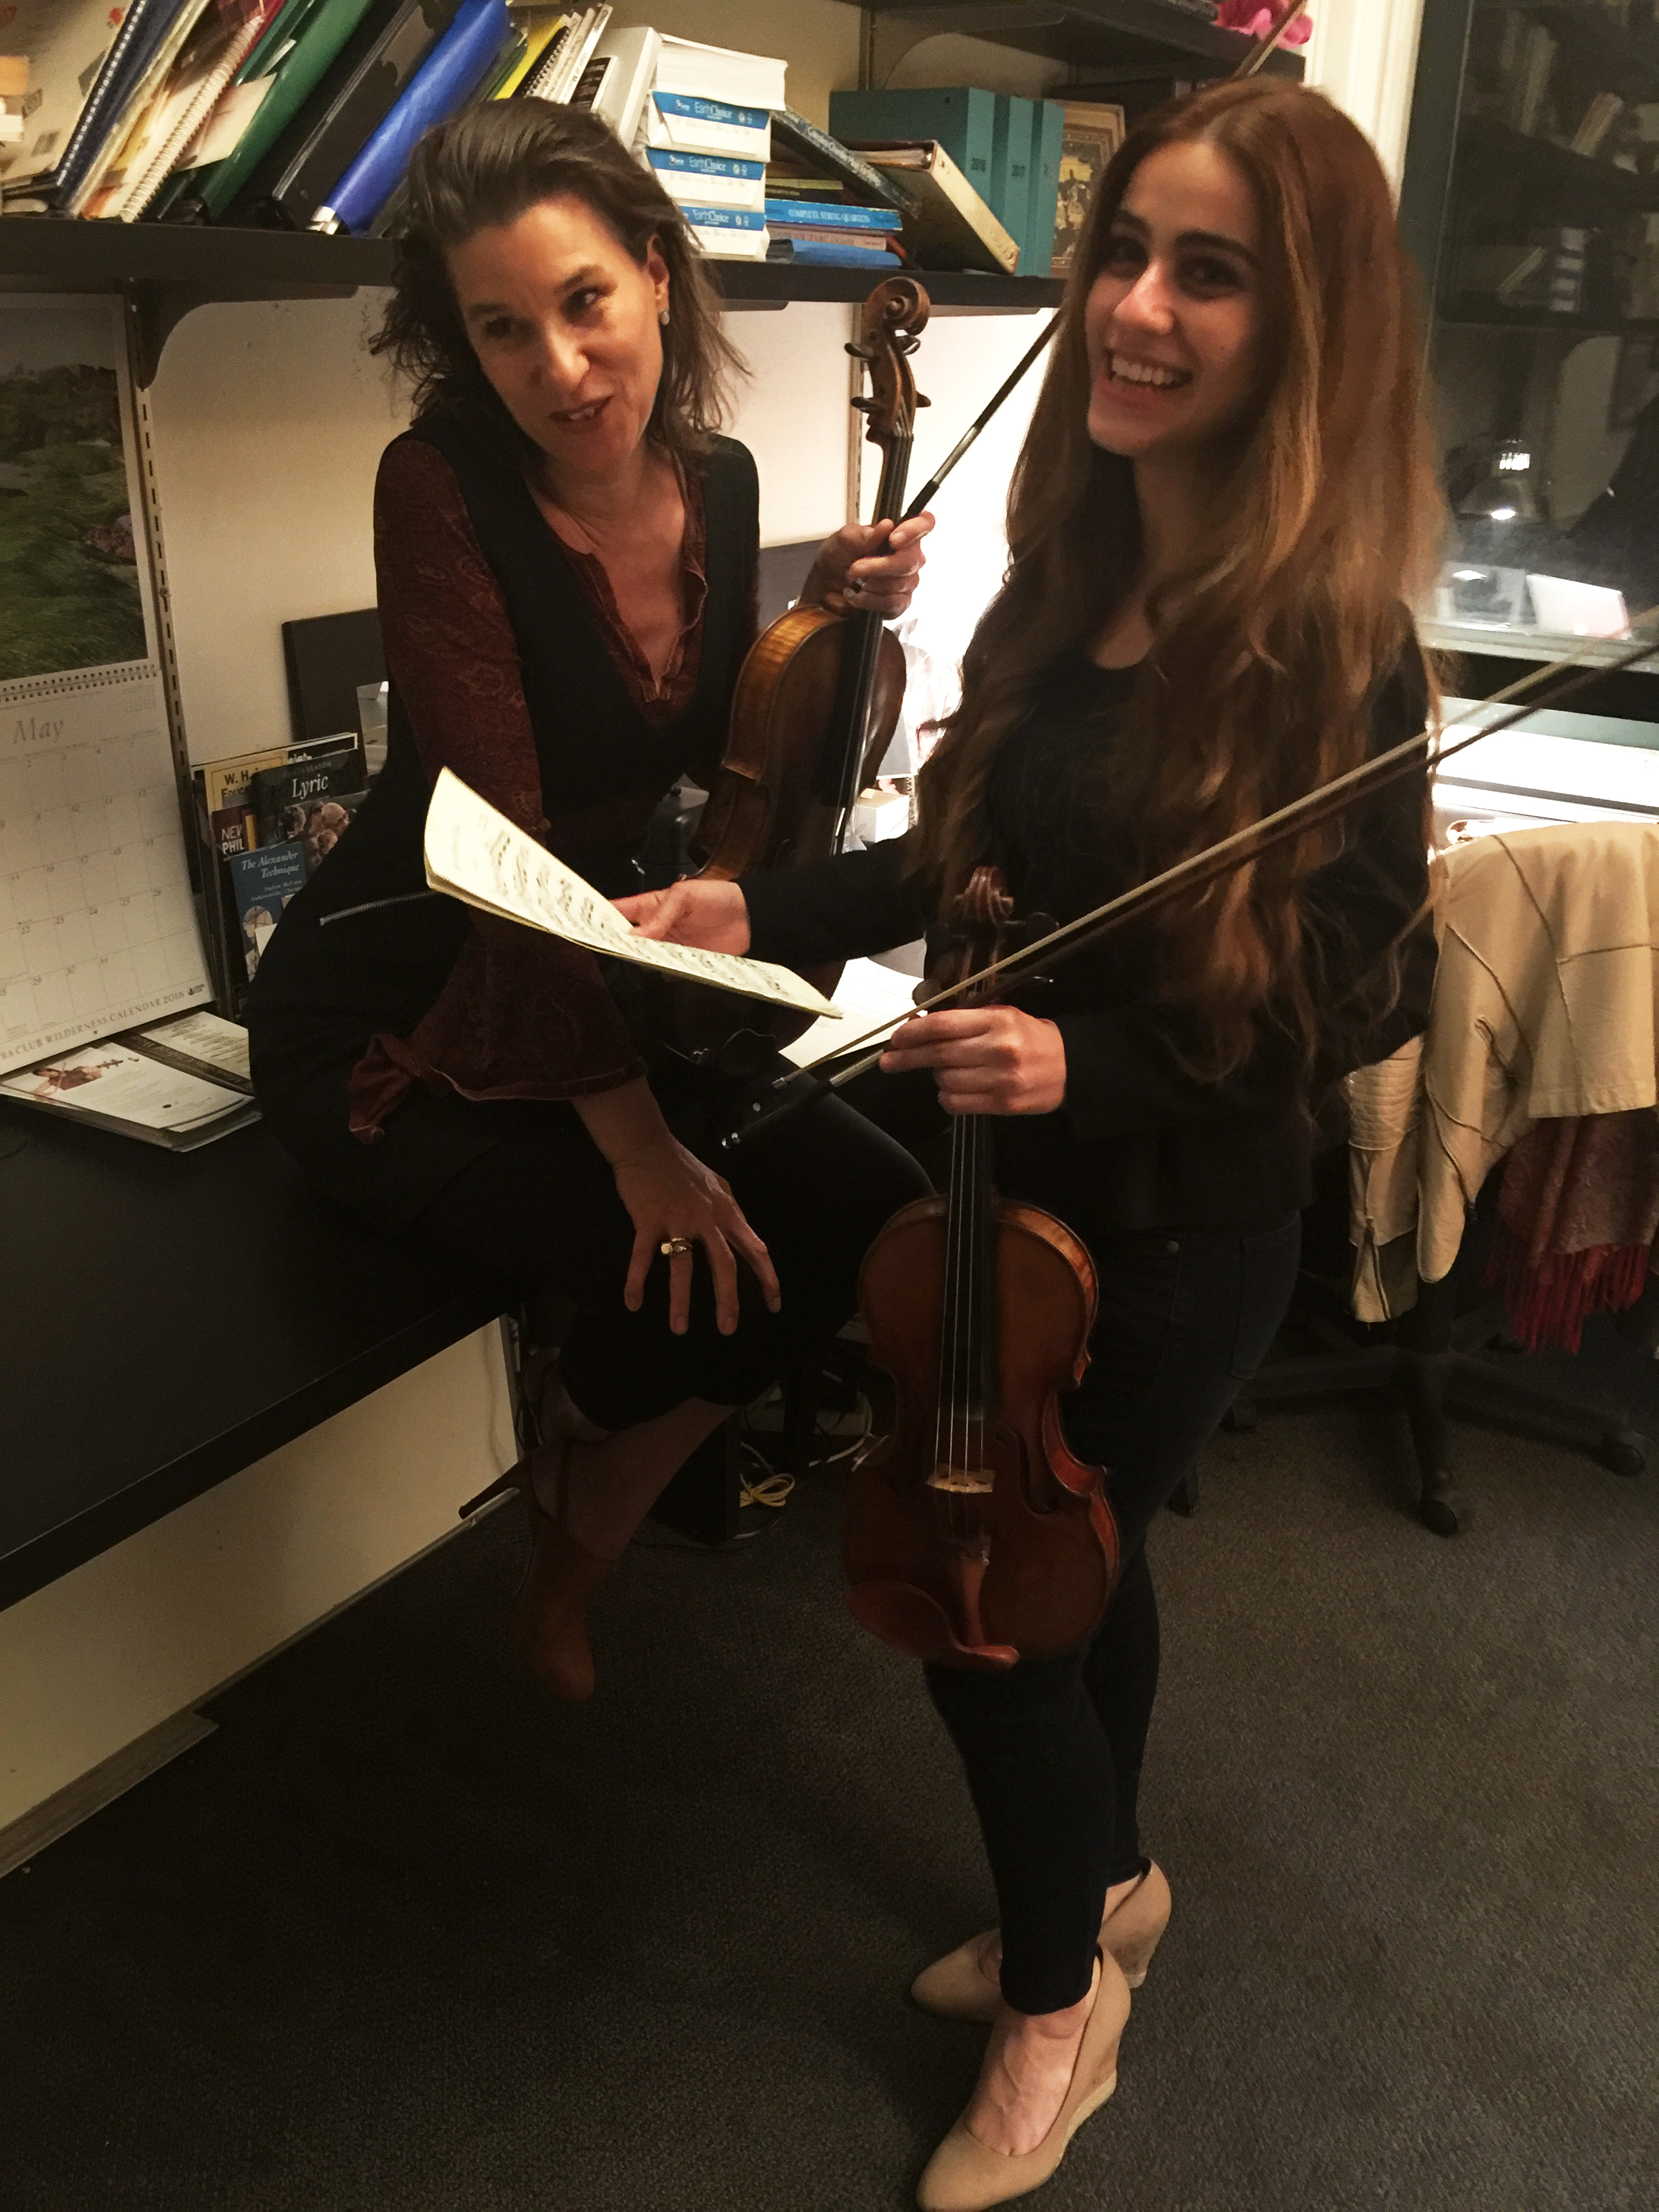 "Erica Carpenedo - ""Erica has that rare and wonderful combination of stellar musicianship, utmost dedication to the musical arts, and a spirit that sparkles with joy and delight. She is a colleague I am most grateful to have in my circle."" ~Nora Williams"